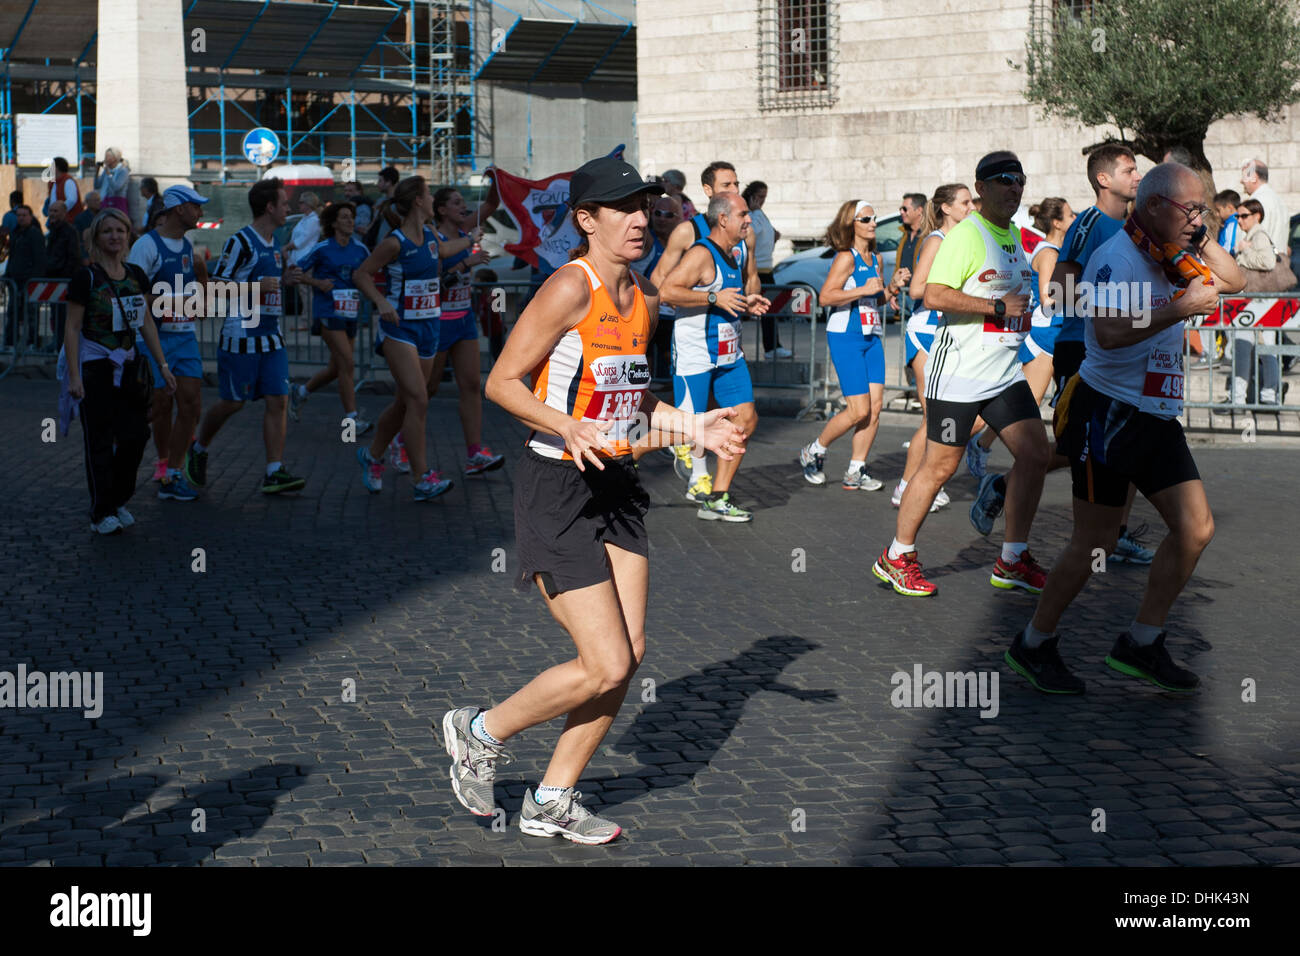 Race in Vatican city - Stock Image